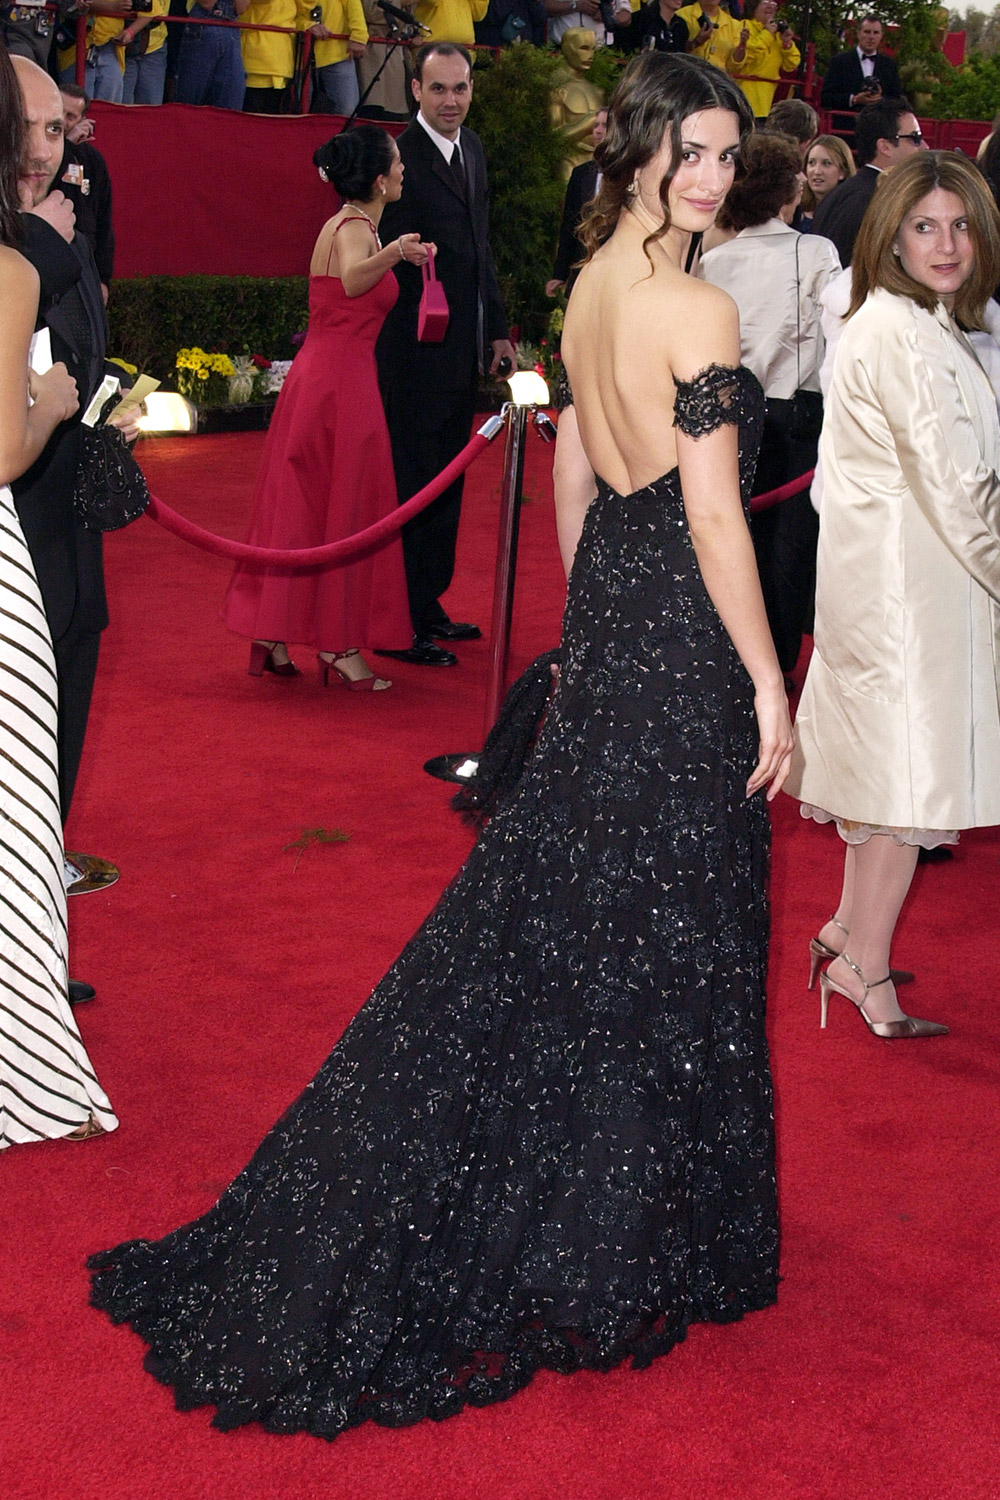 Penelope Cruz at the 73rd Annual Academy Awards